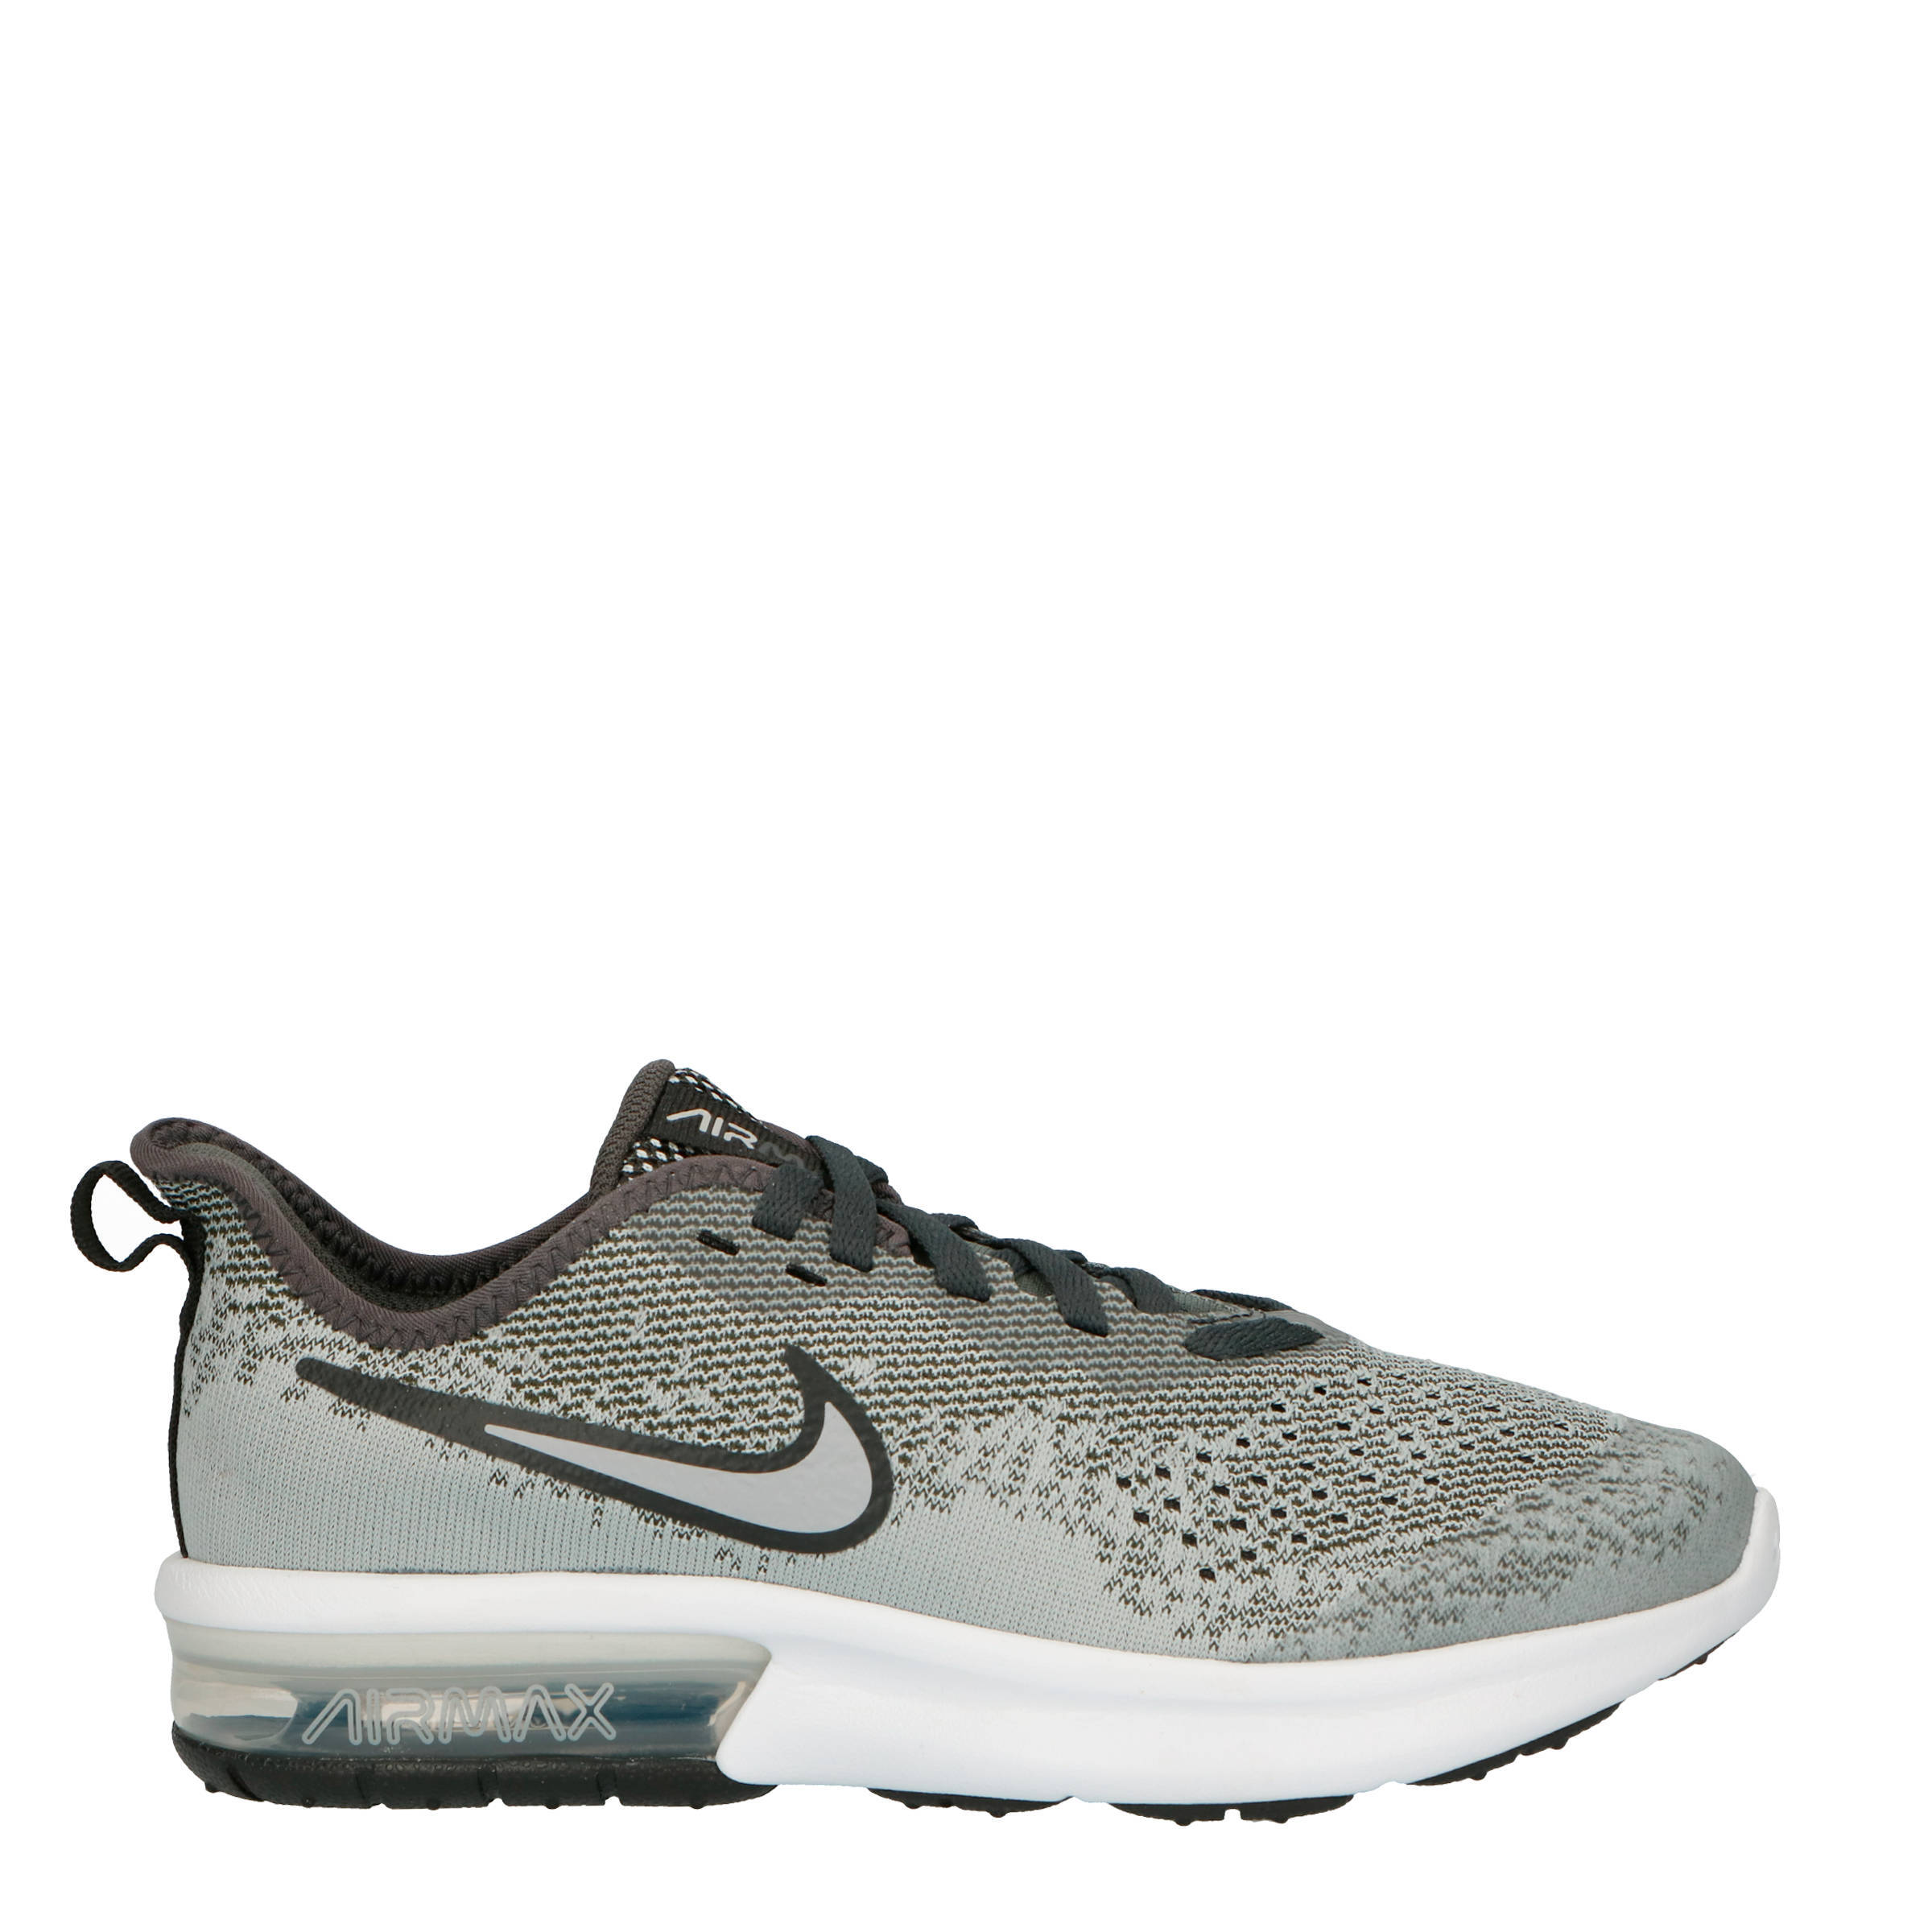 9910f87423a Nike Air Max Sequent 4 (GS) sneakers | wehkamp